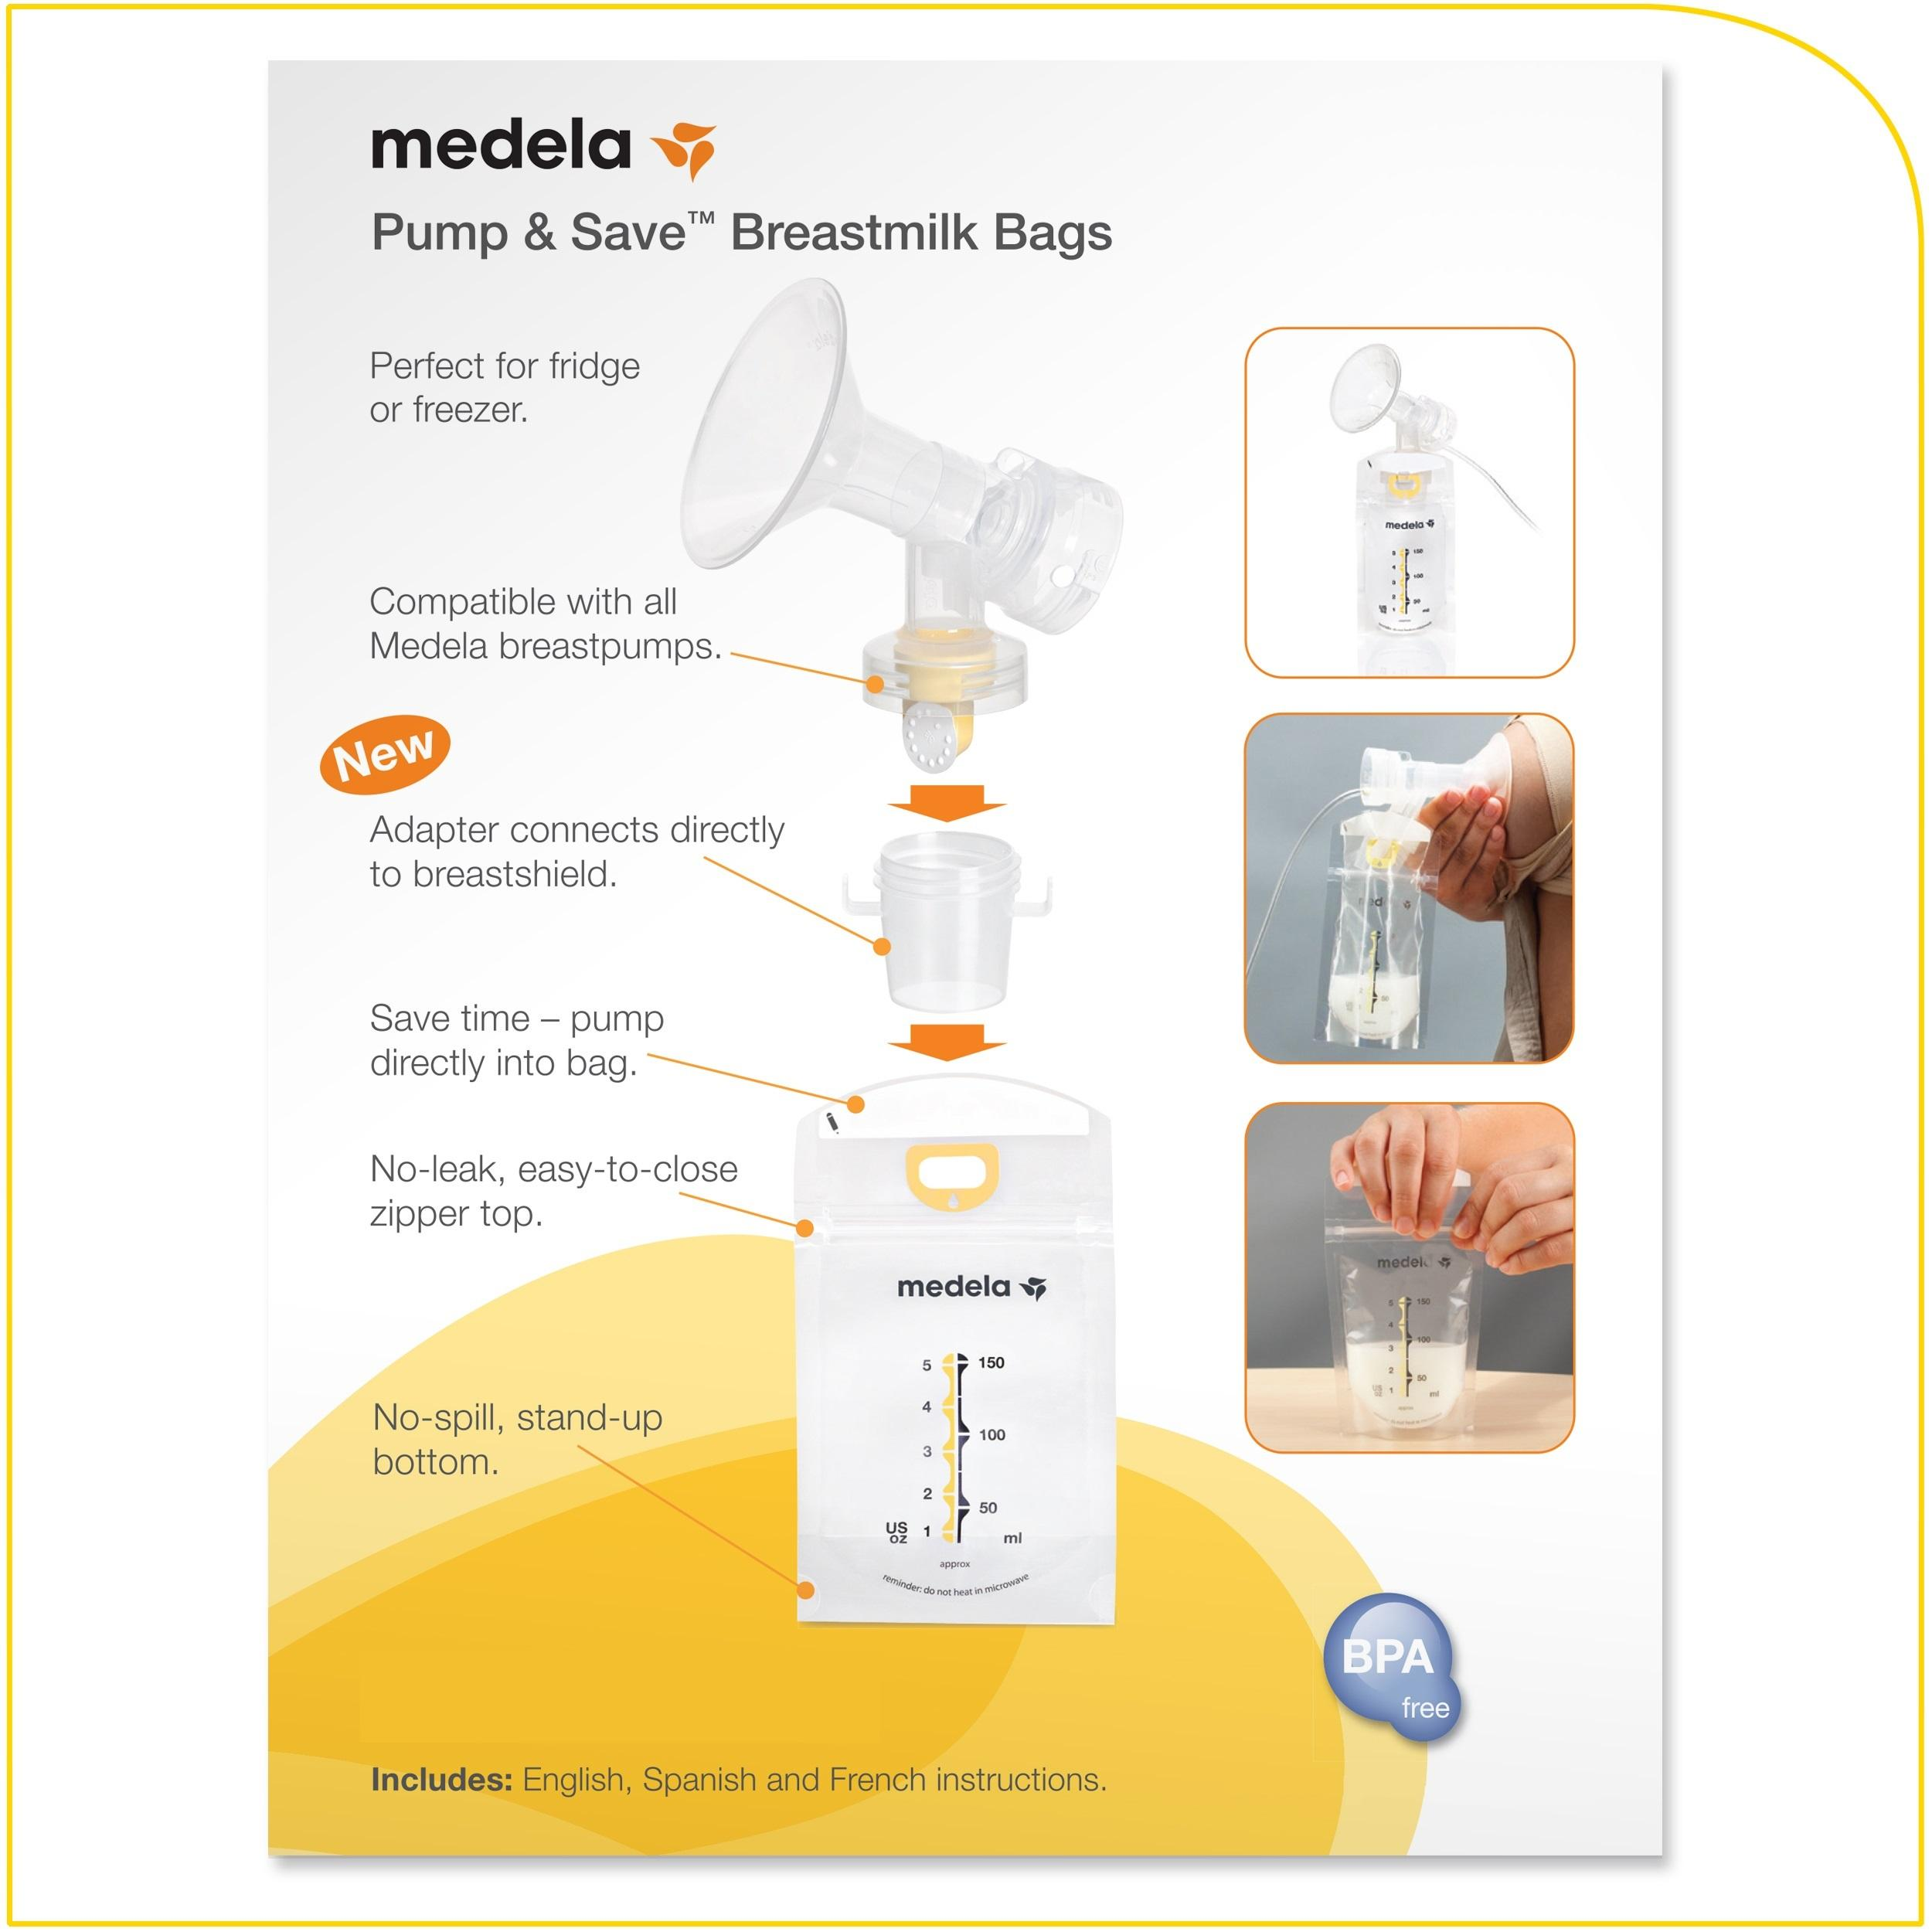 Medela Pump & Save Breast Milk Storage Bags, 20 Count Pack, Breastmilk Freezer Bags, Pour or Pump Directly into Bags with Included Easy Connect ...